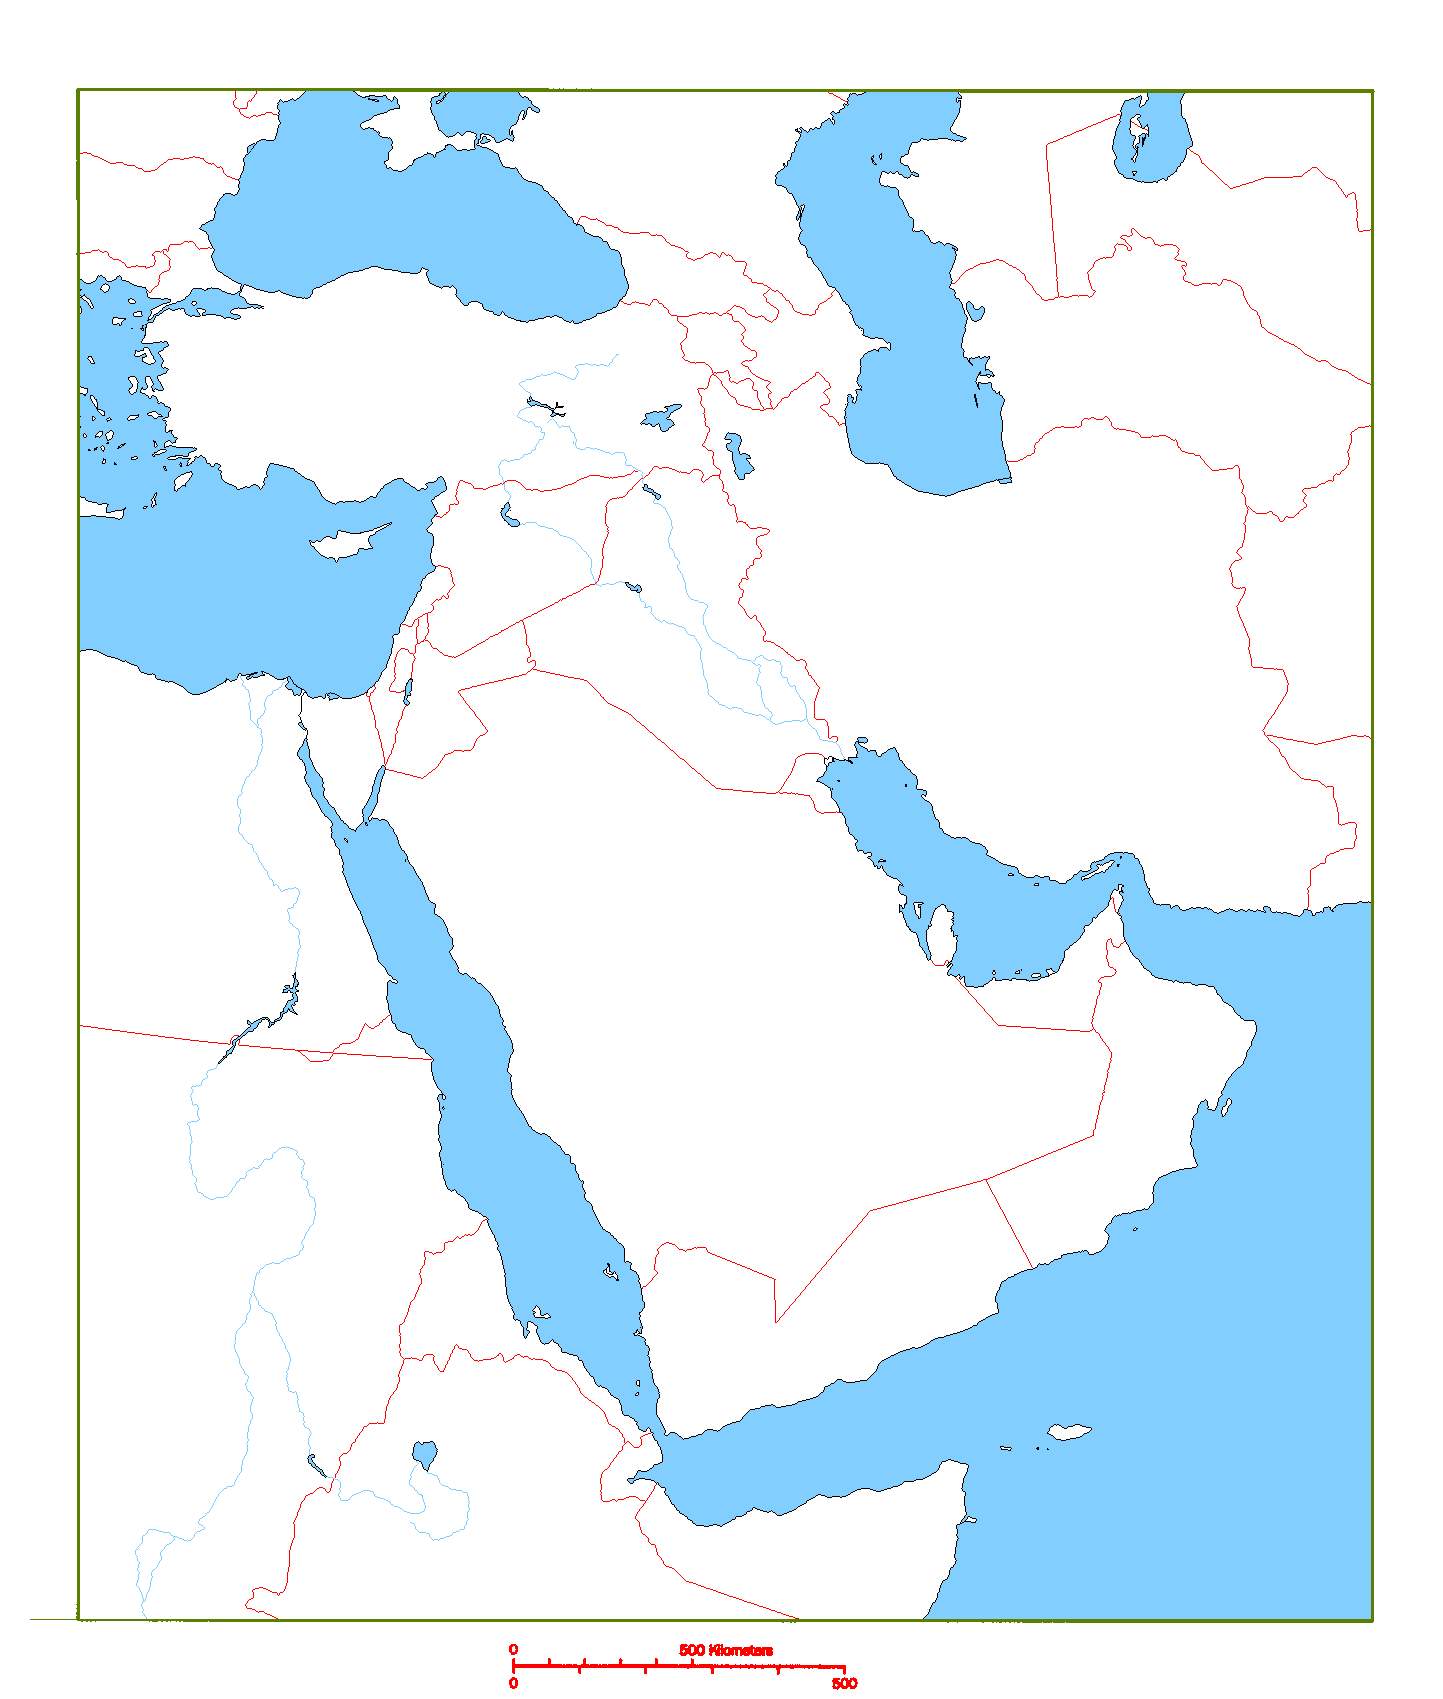 medium resolution of blank map of middle east   Middle east map